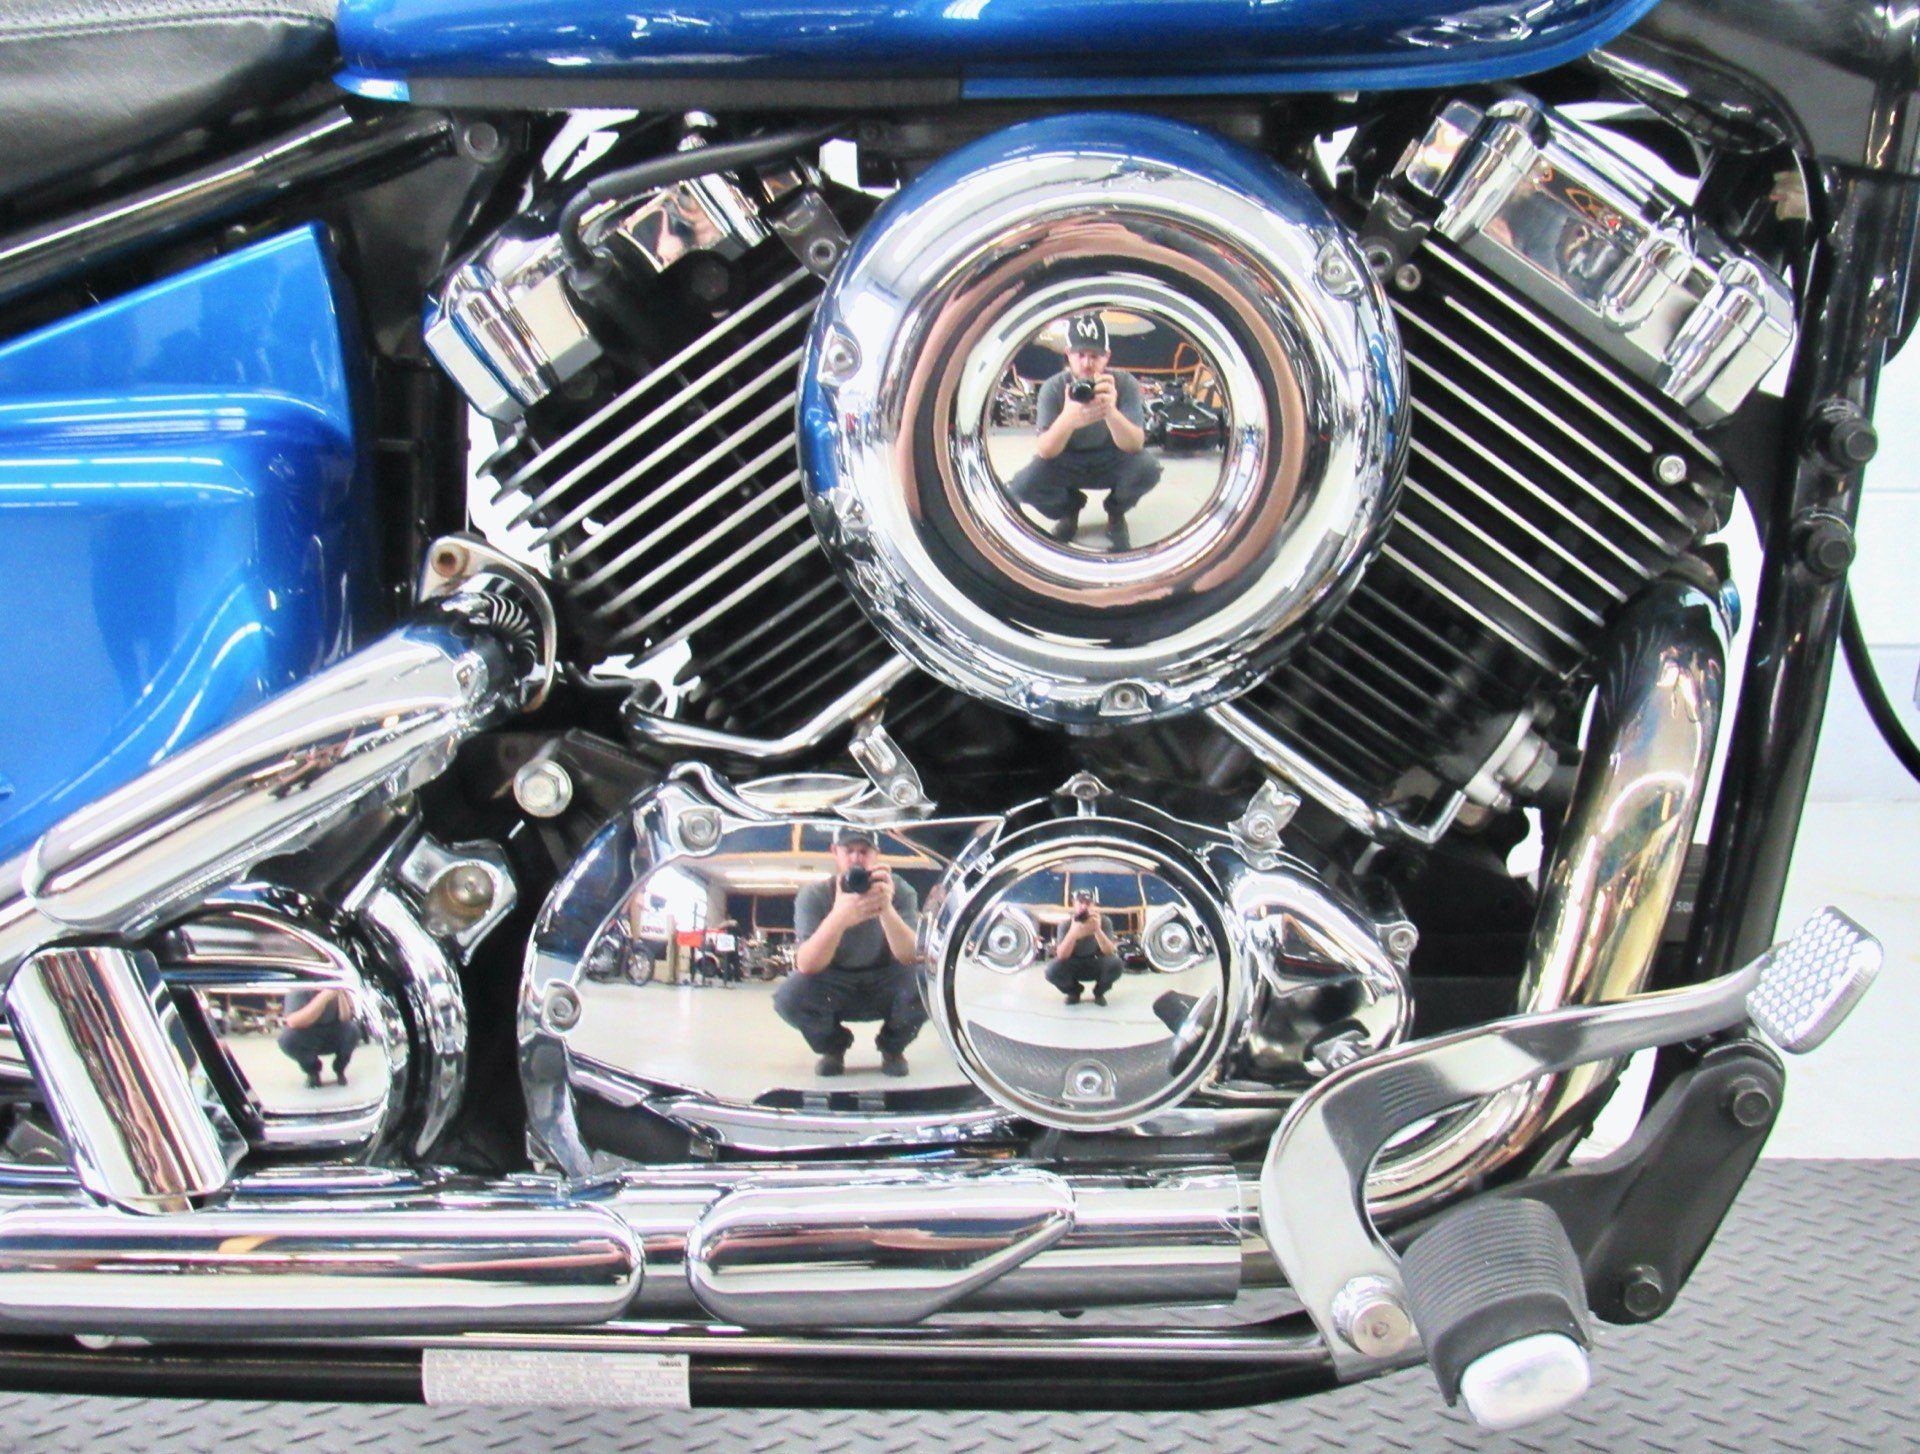 2009 Yamaha V Star 650 Custom in Fredericksburg, Virginia - Photo 13